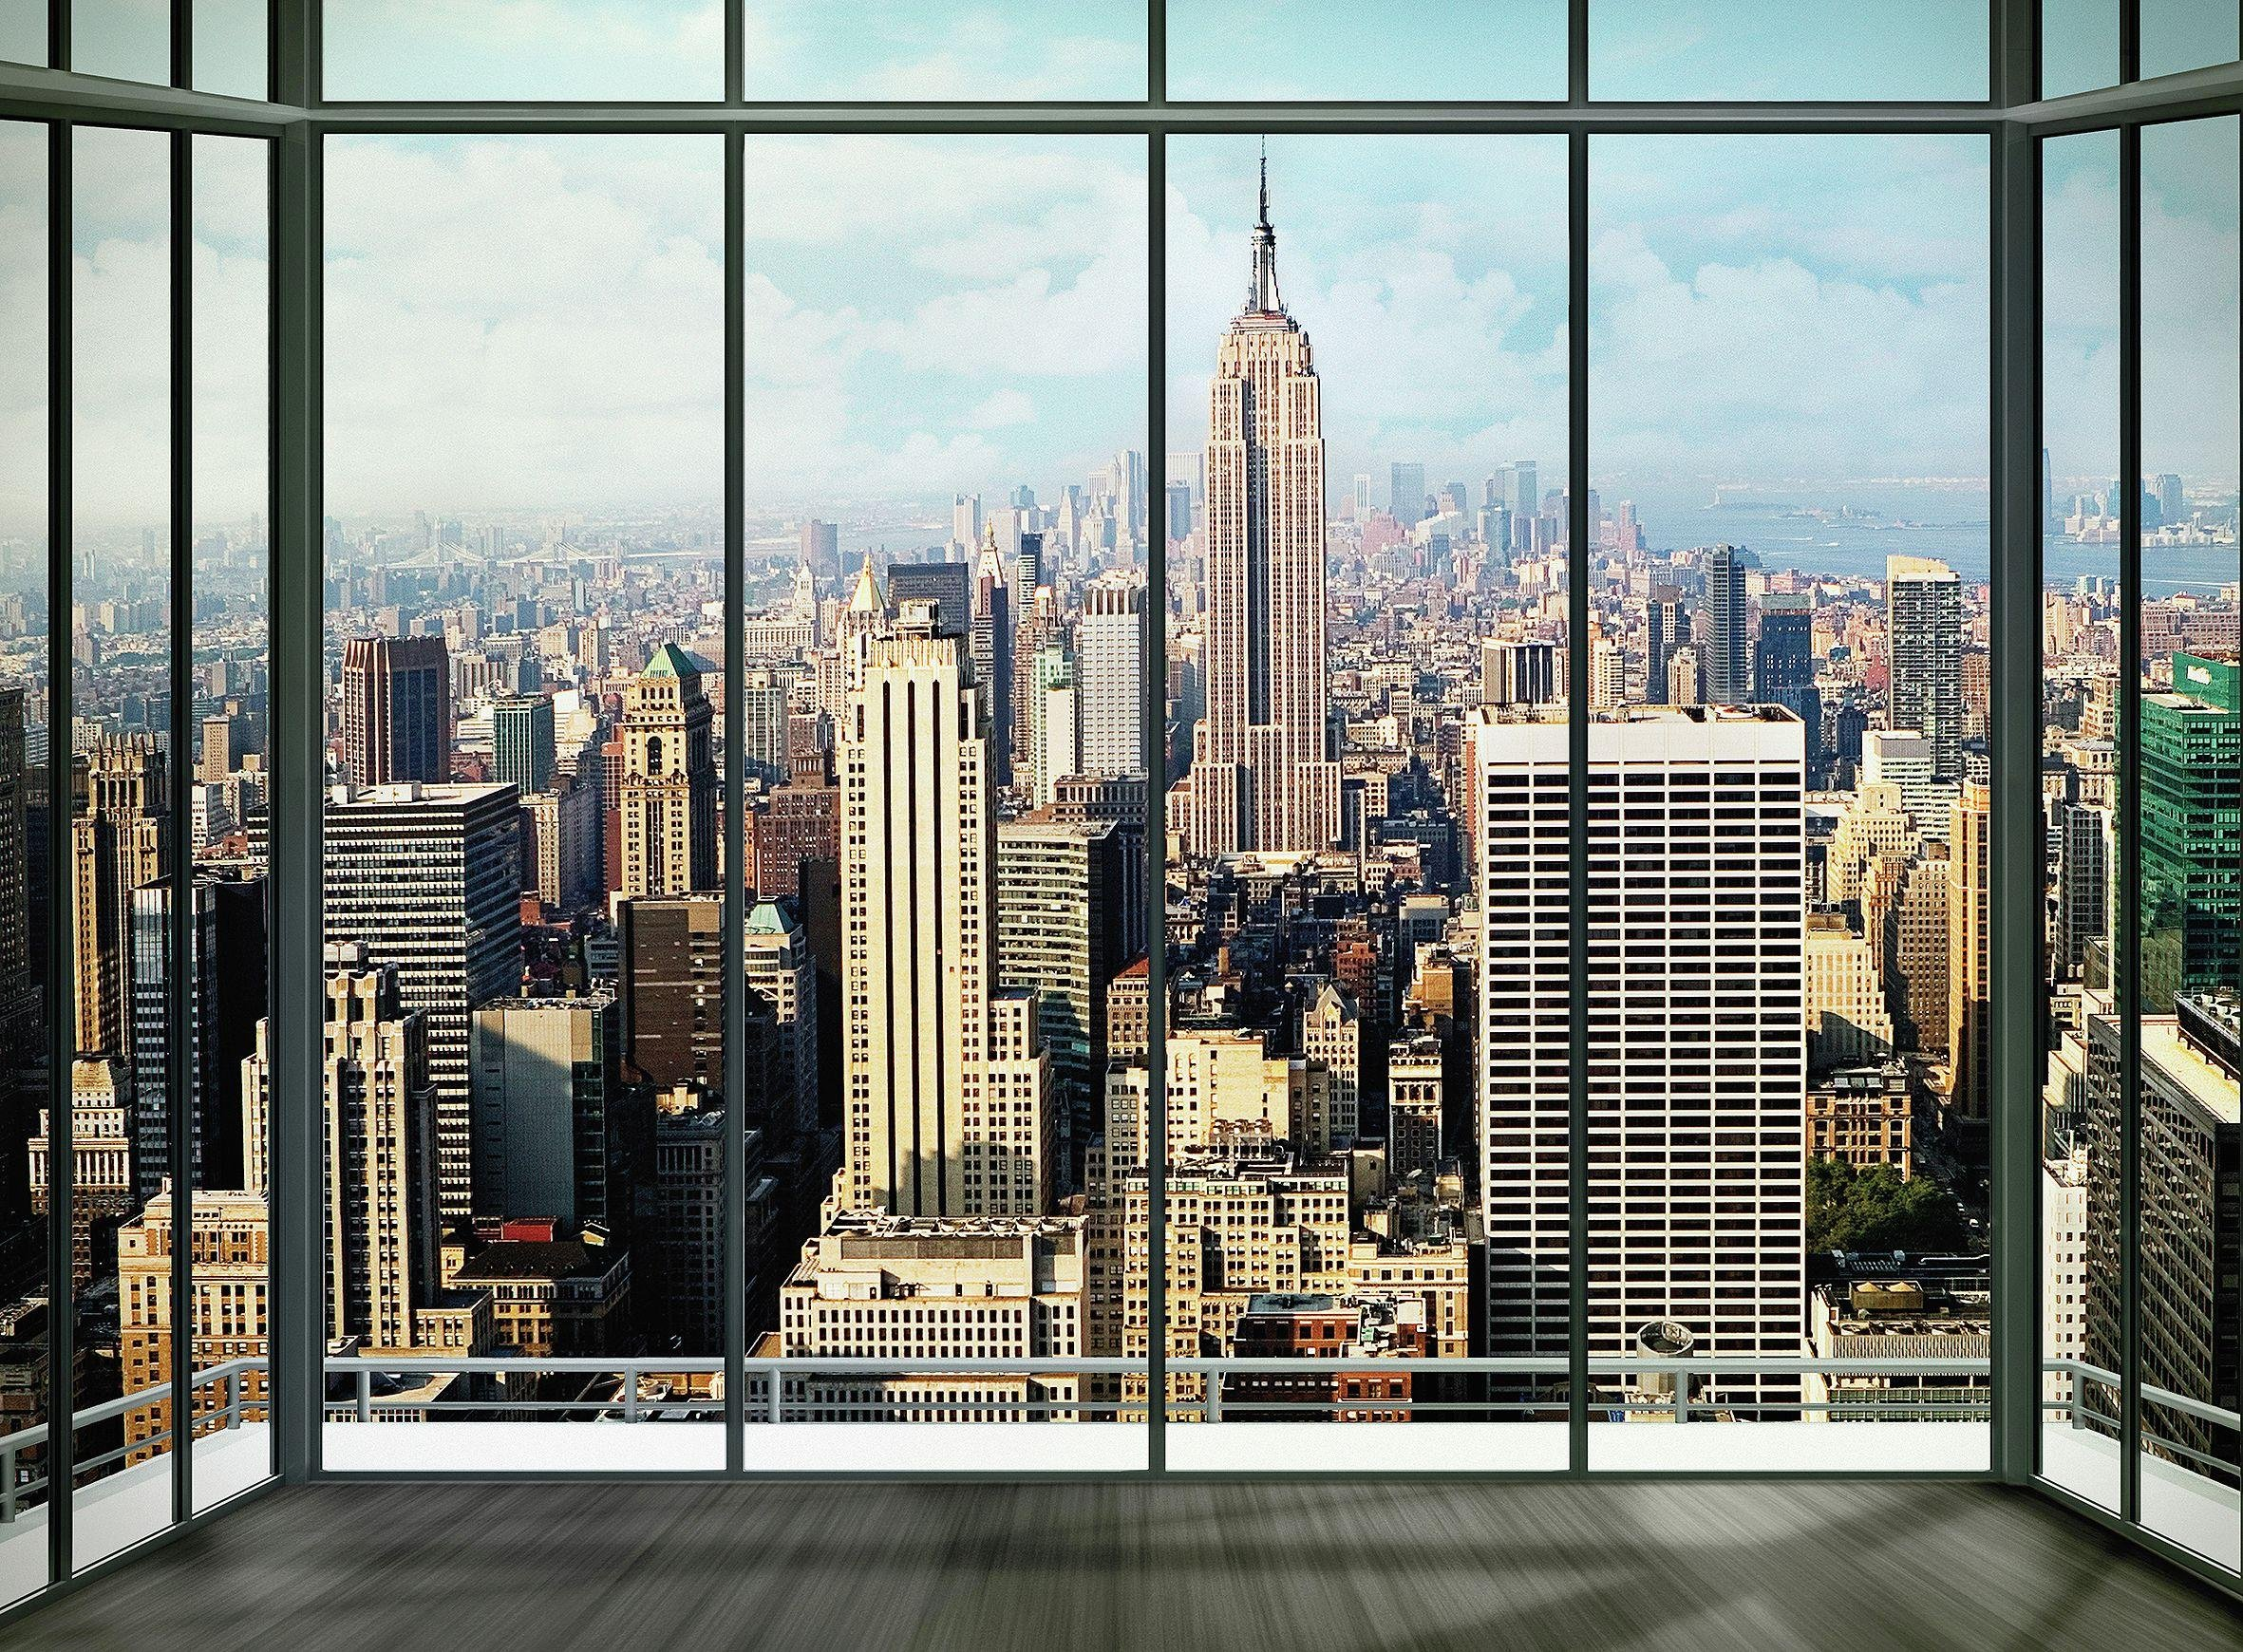 City Wall Murals buy 1wall city window wall mural at argos.co.uk - your online shop